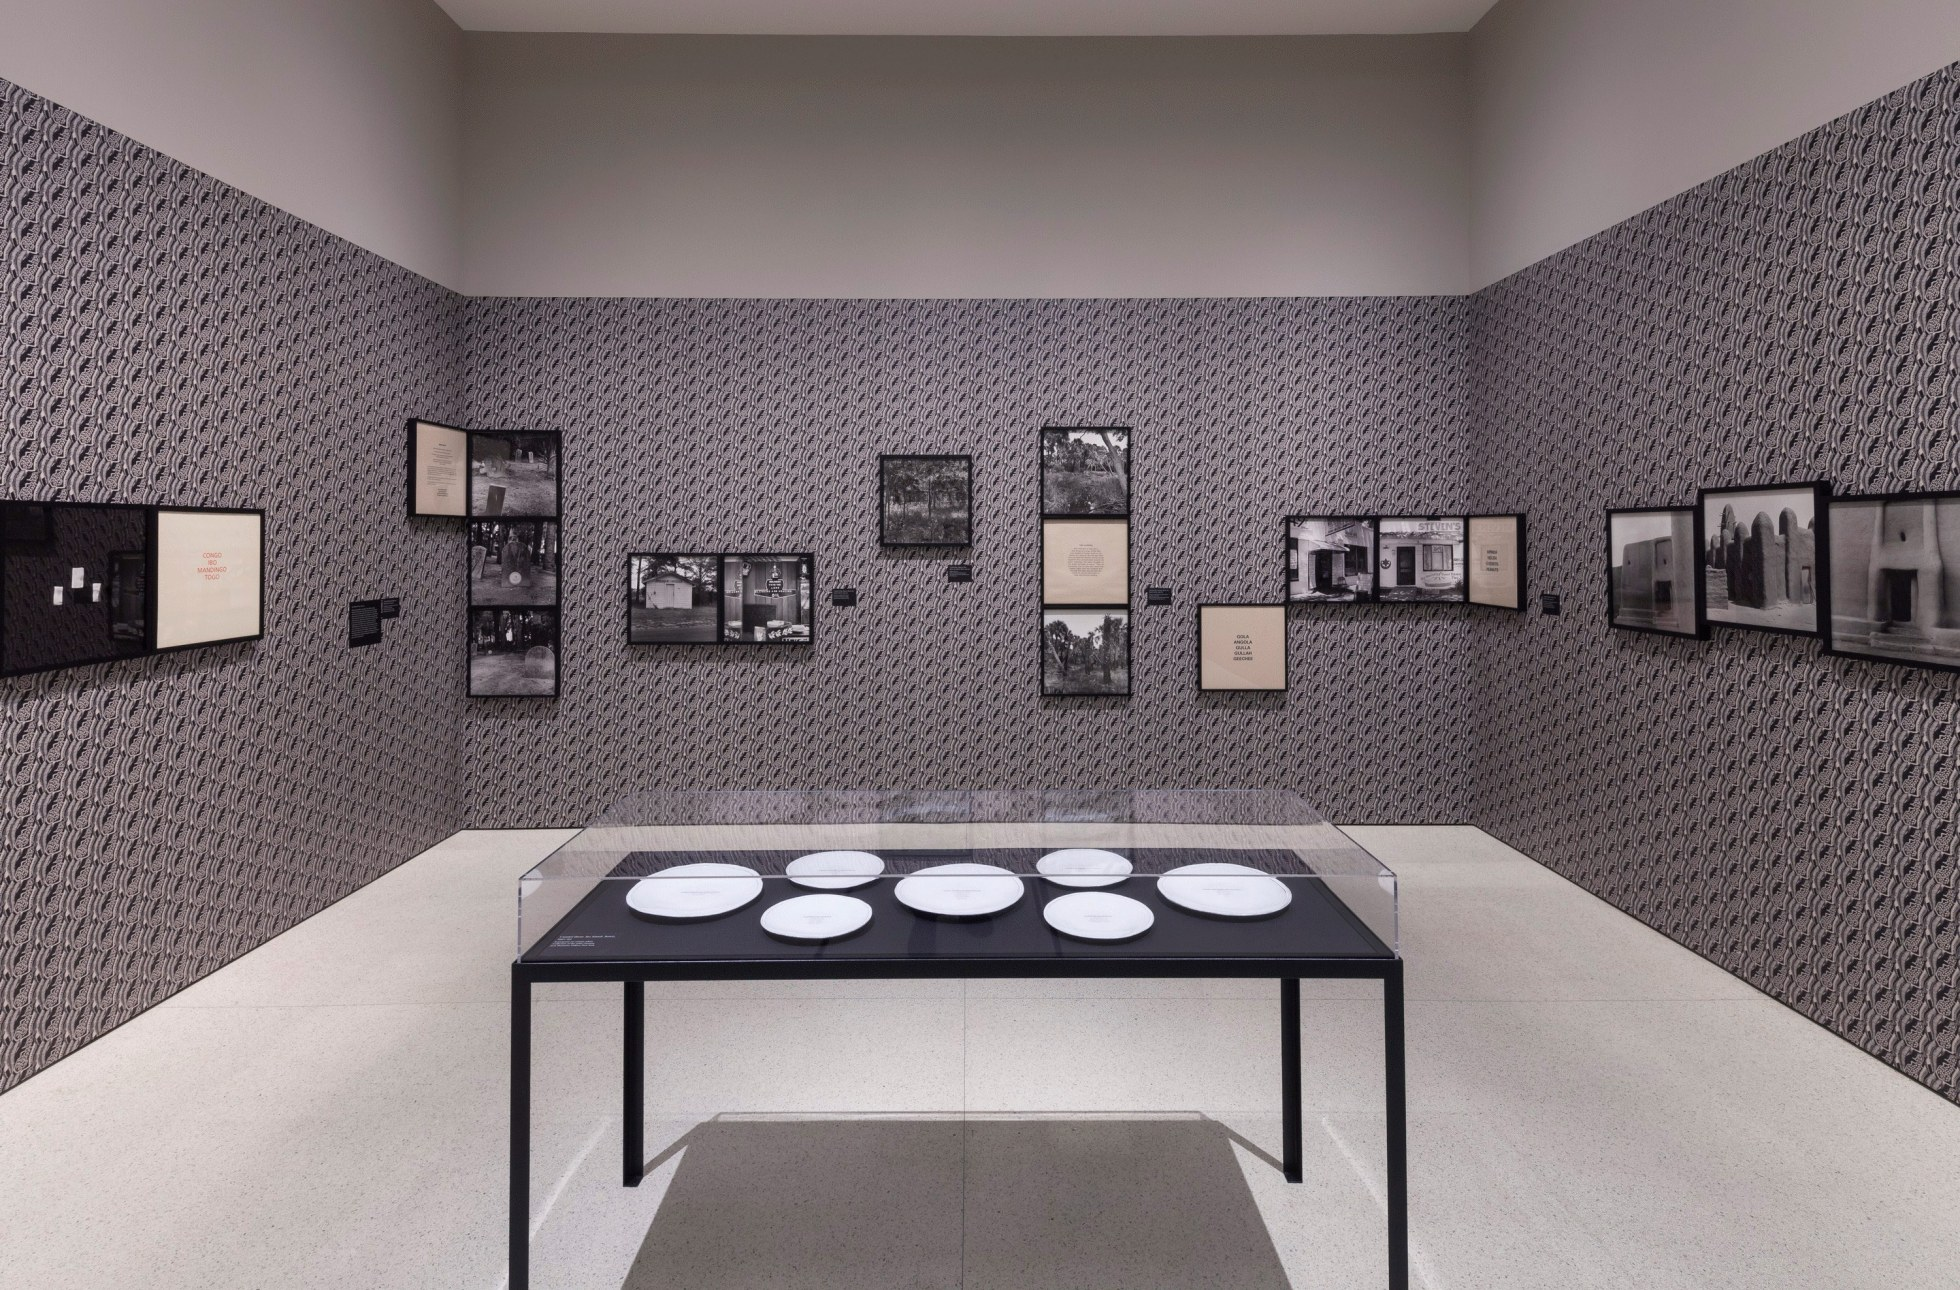 Carrie Mae Weems Three Decades Of Photography And Video